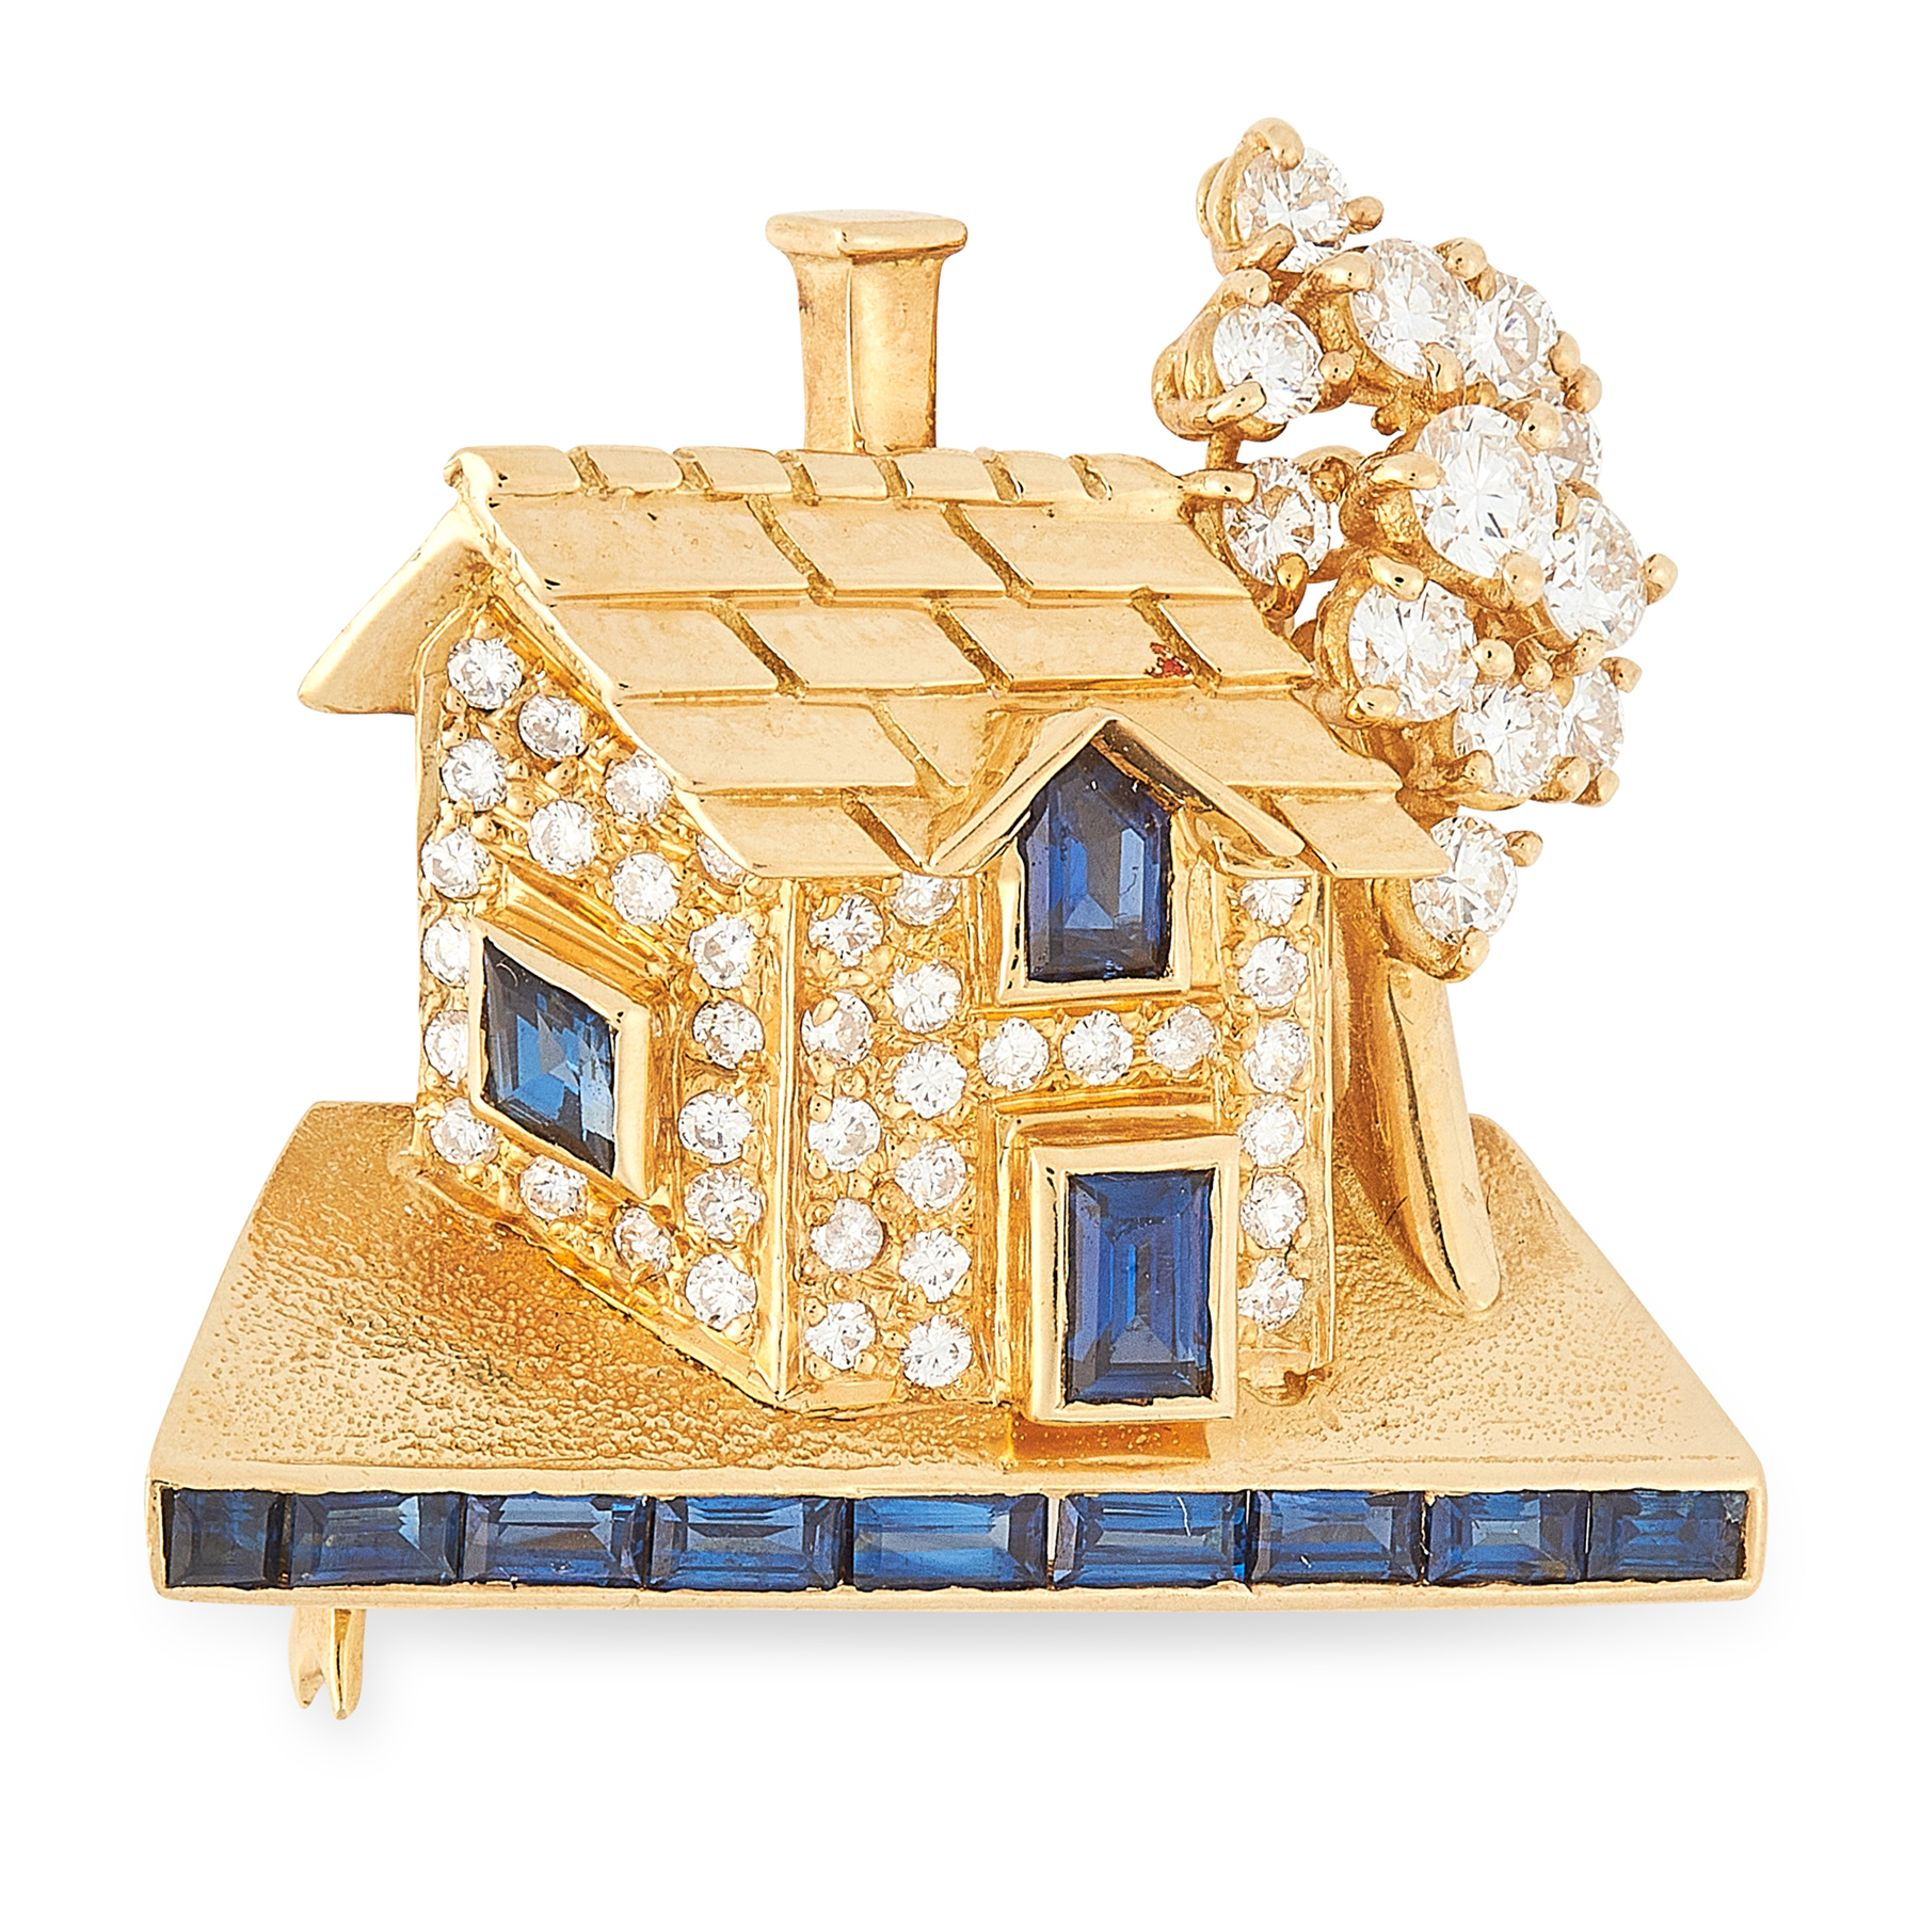 Los 14 - A SAPPHIRE AND DIAMOND HOUSE BROOCH in 18ct yellow gold, designed to depict a house with a tree,